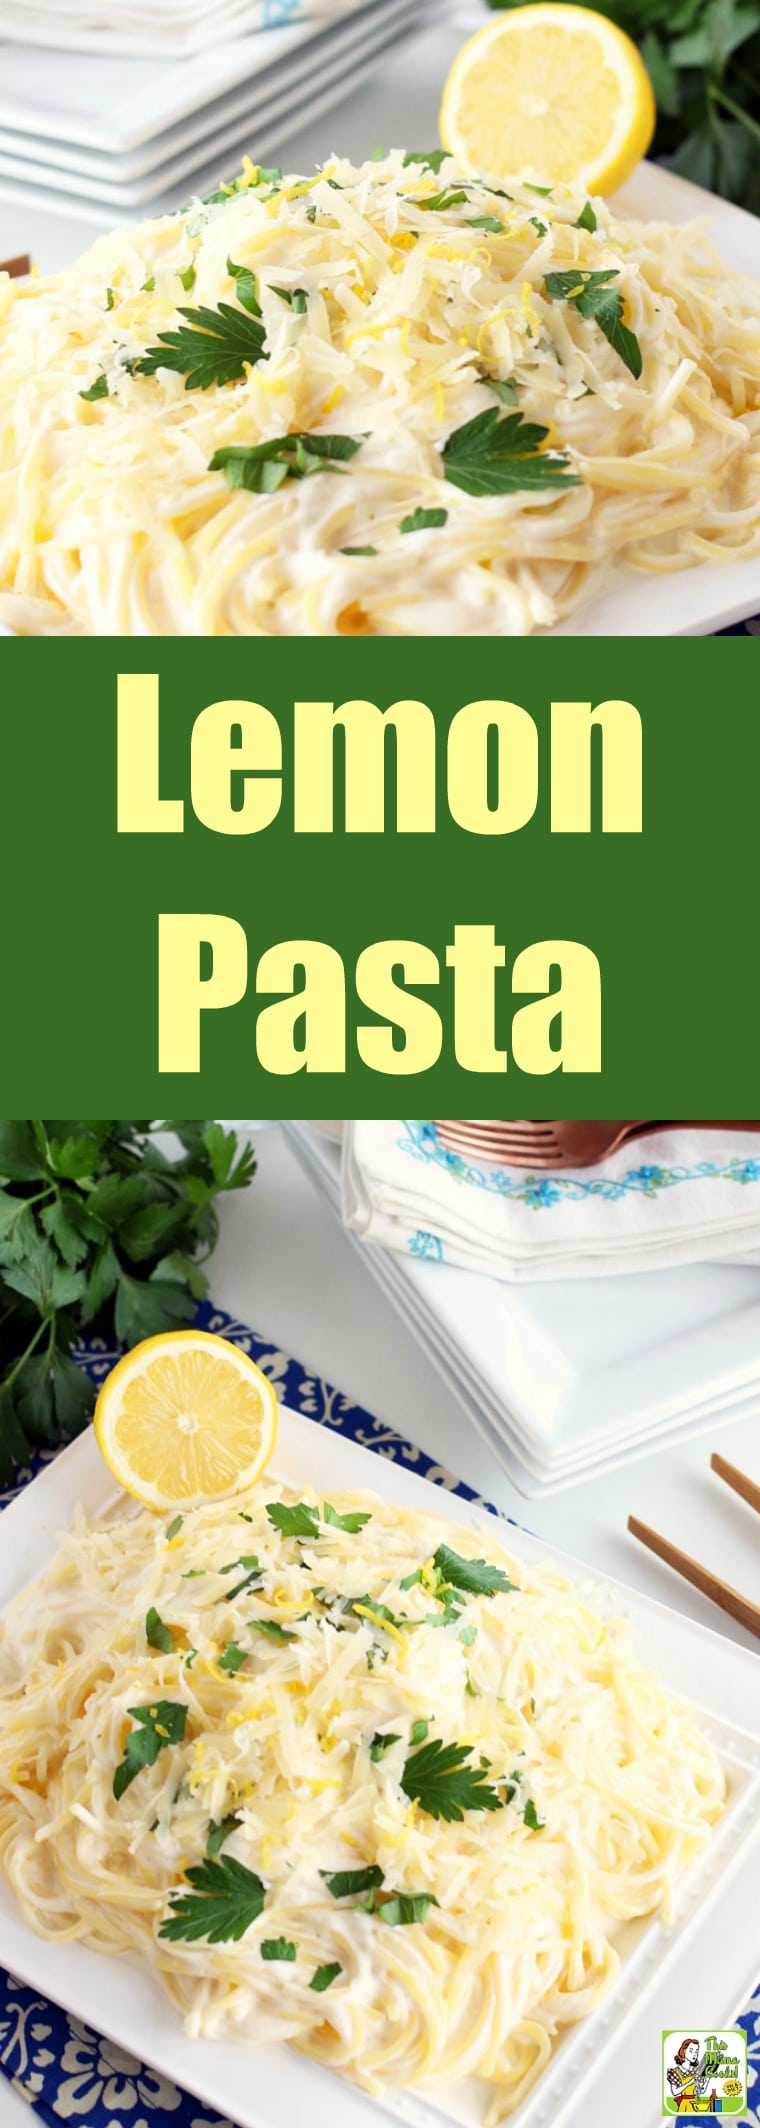 This Lemon Pasta recipe is a delightful pairing of creamy sauce, pasta, and bright lemon flavor that makes a perfect weeknight meal. Easy to adapt to vegan and gluten-free diets. #recipes #easy #recipeoftheday #glutenfree #easyrecipe #easyrecipes #glutenfreerecipes #dinner #easydinner #dinnerrecipes #dinnerideas #pasta #lemon